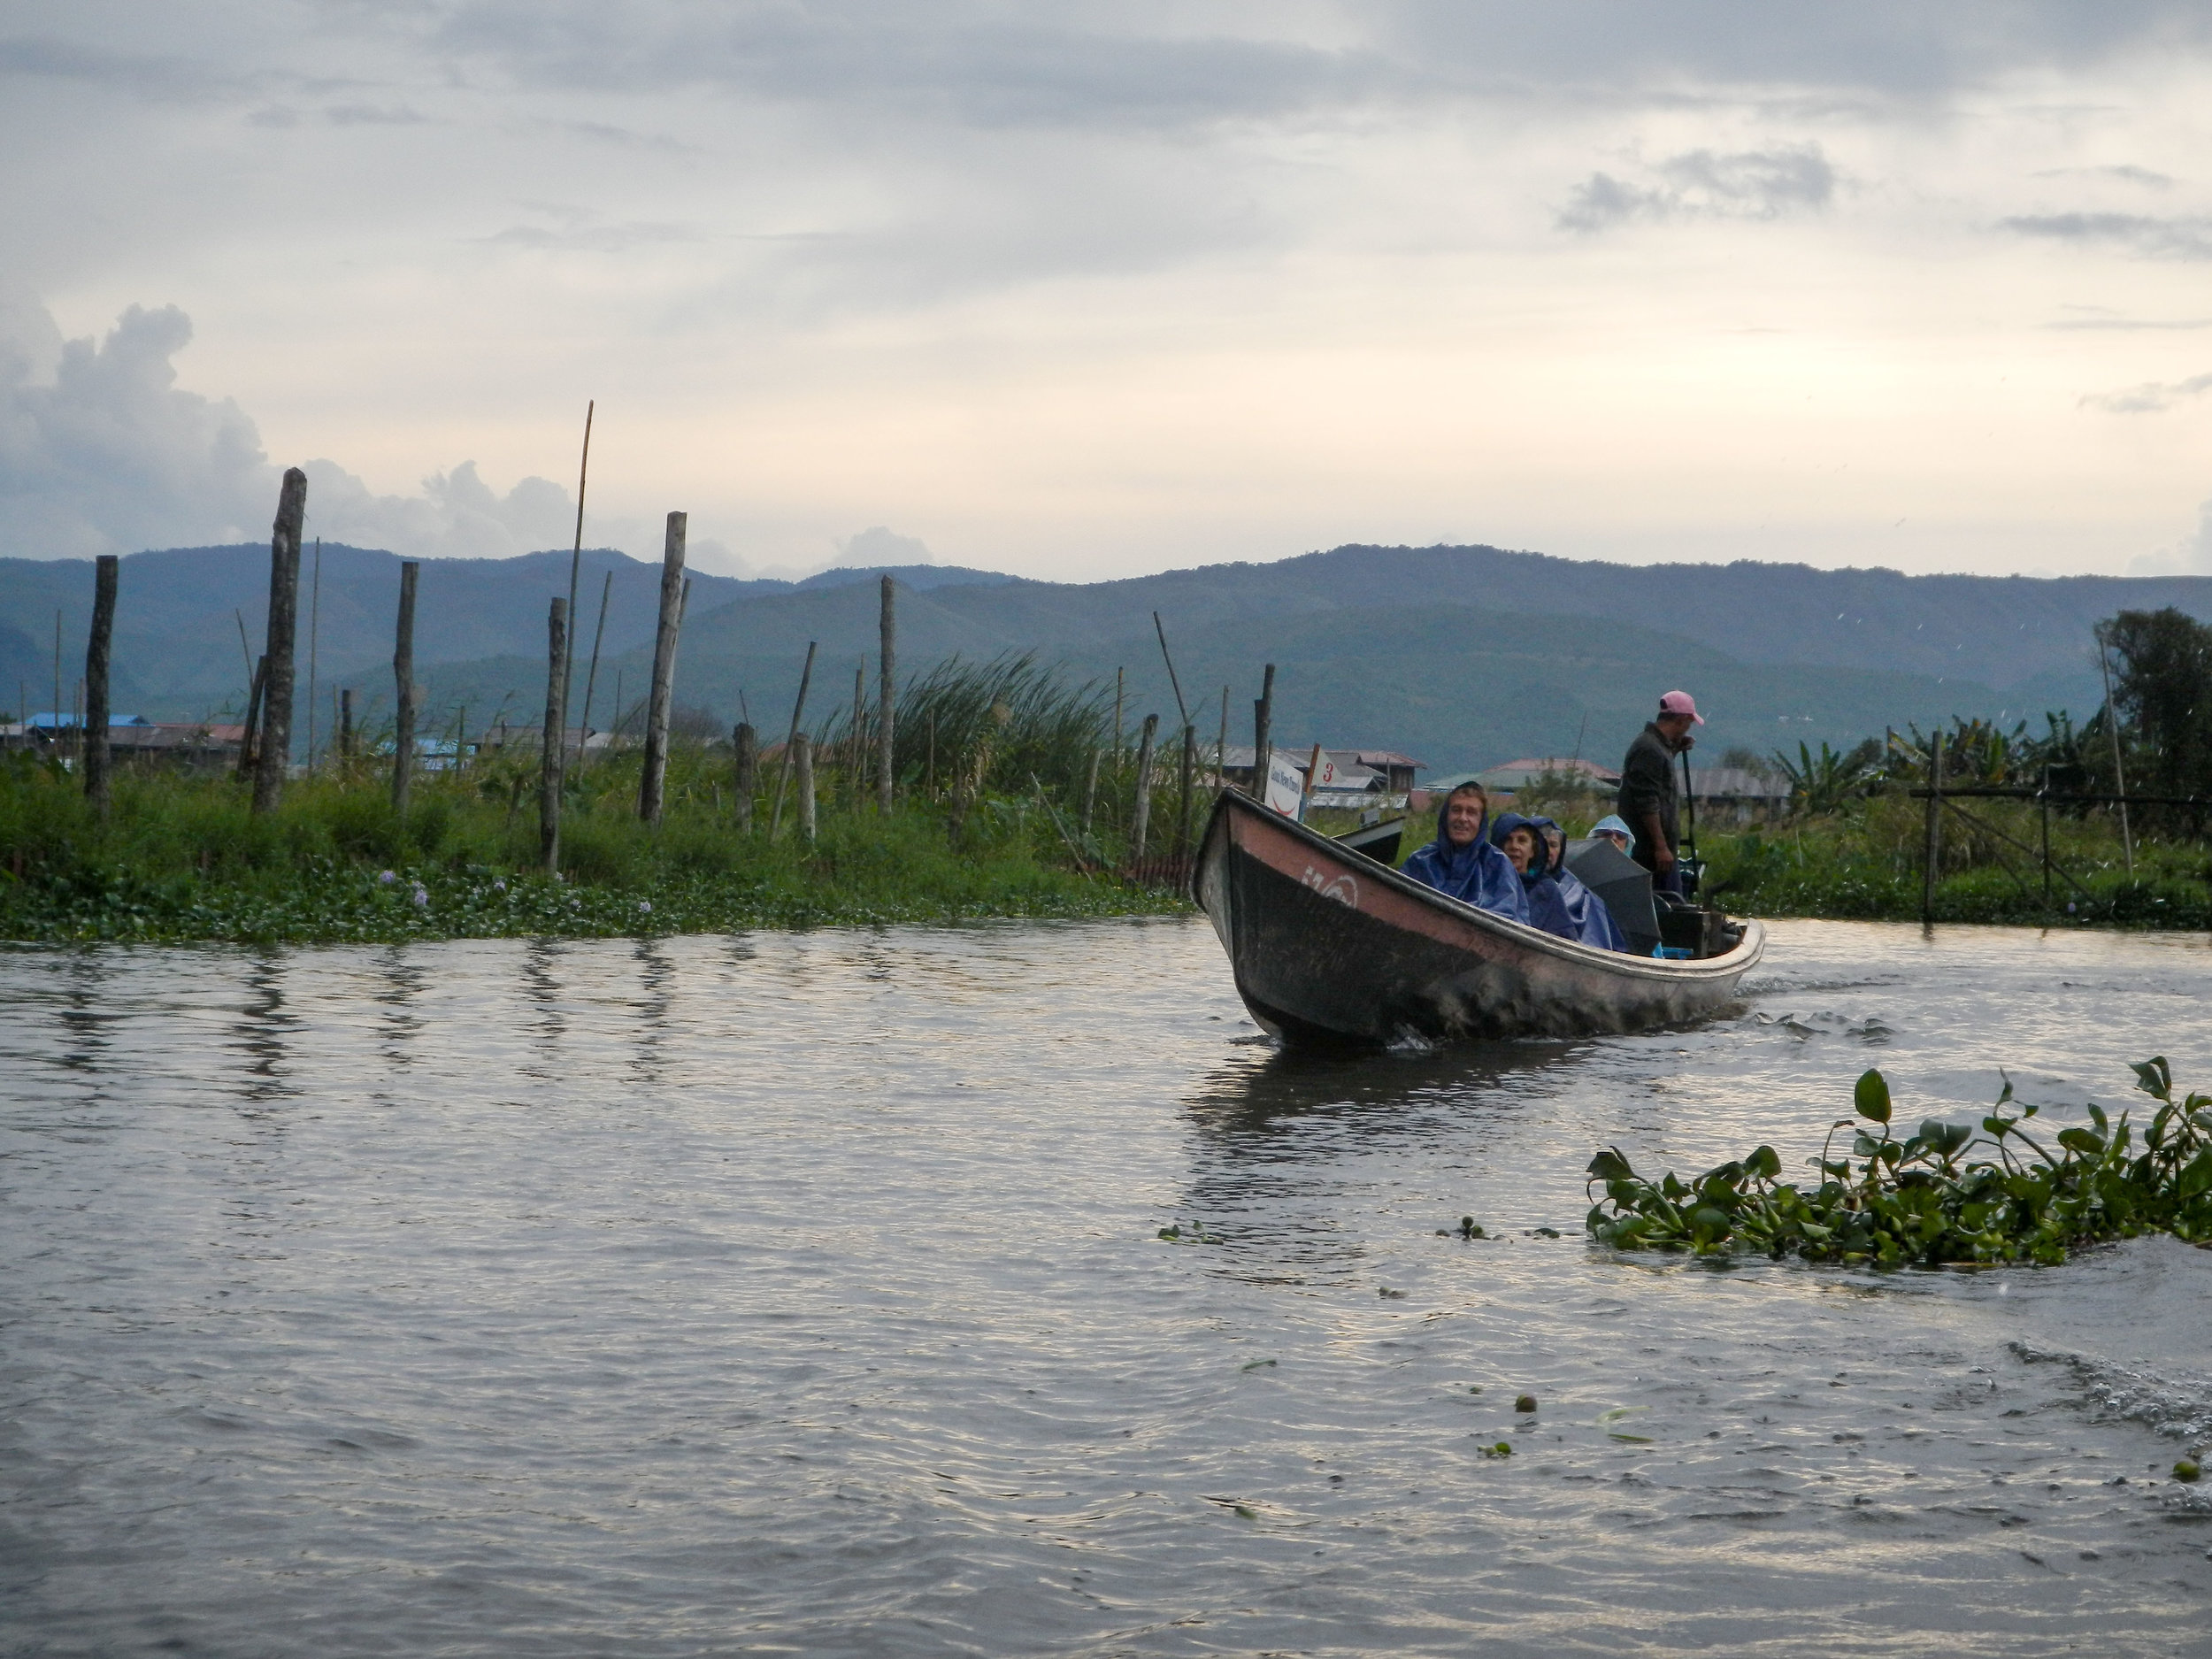 Cruising through the vegetable gardens 001, Inle Lake, Myanmar, 22 Nov 2017.jpg